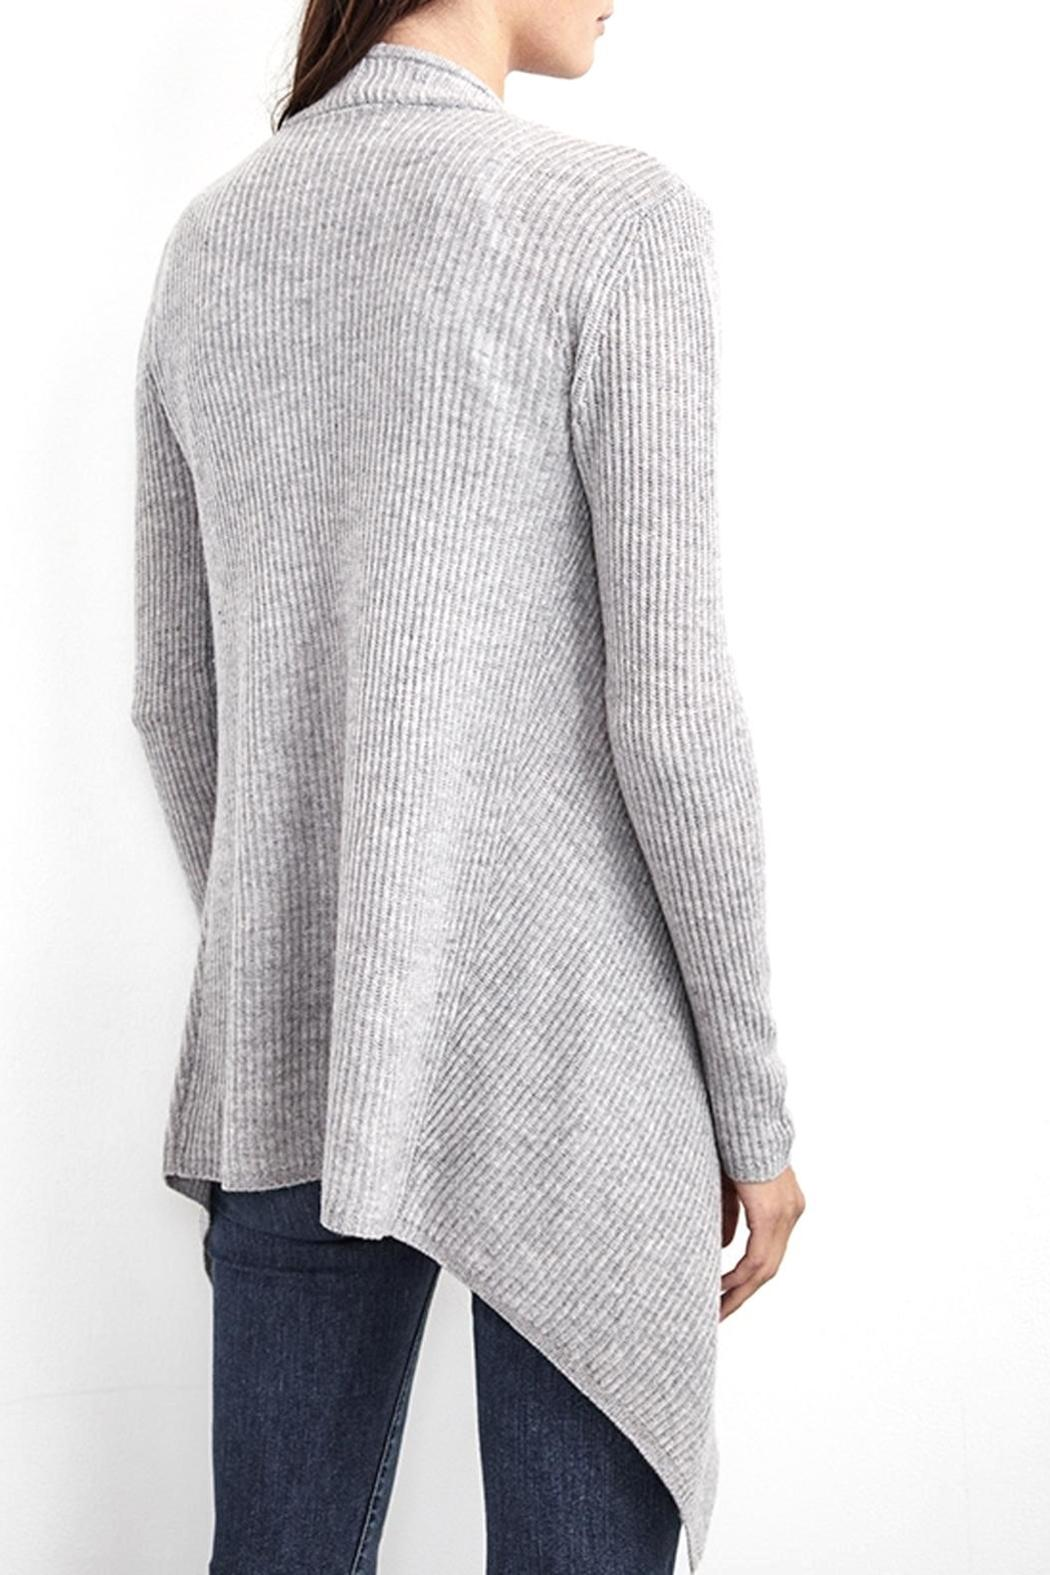 Velvet Grey Rocelyn Sweater - Front Full Image